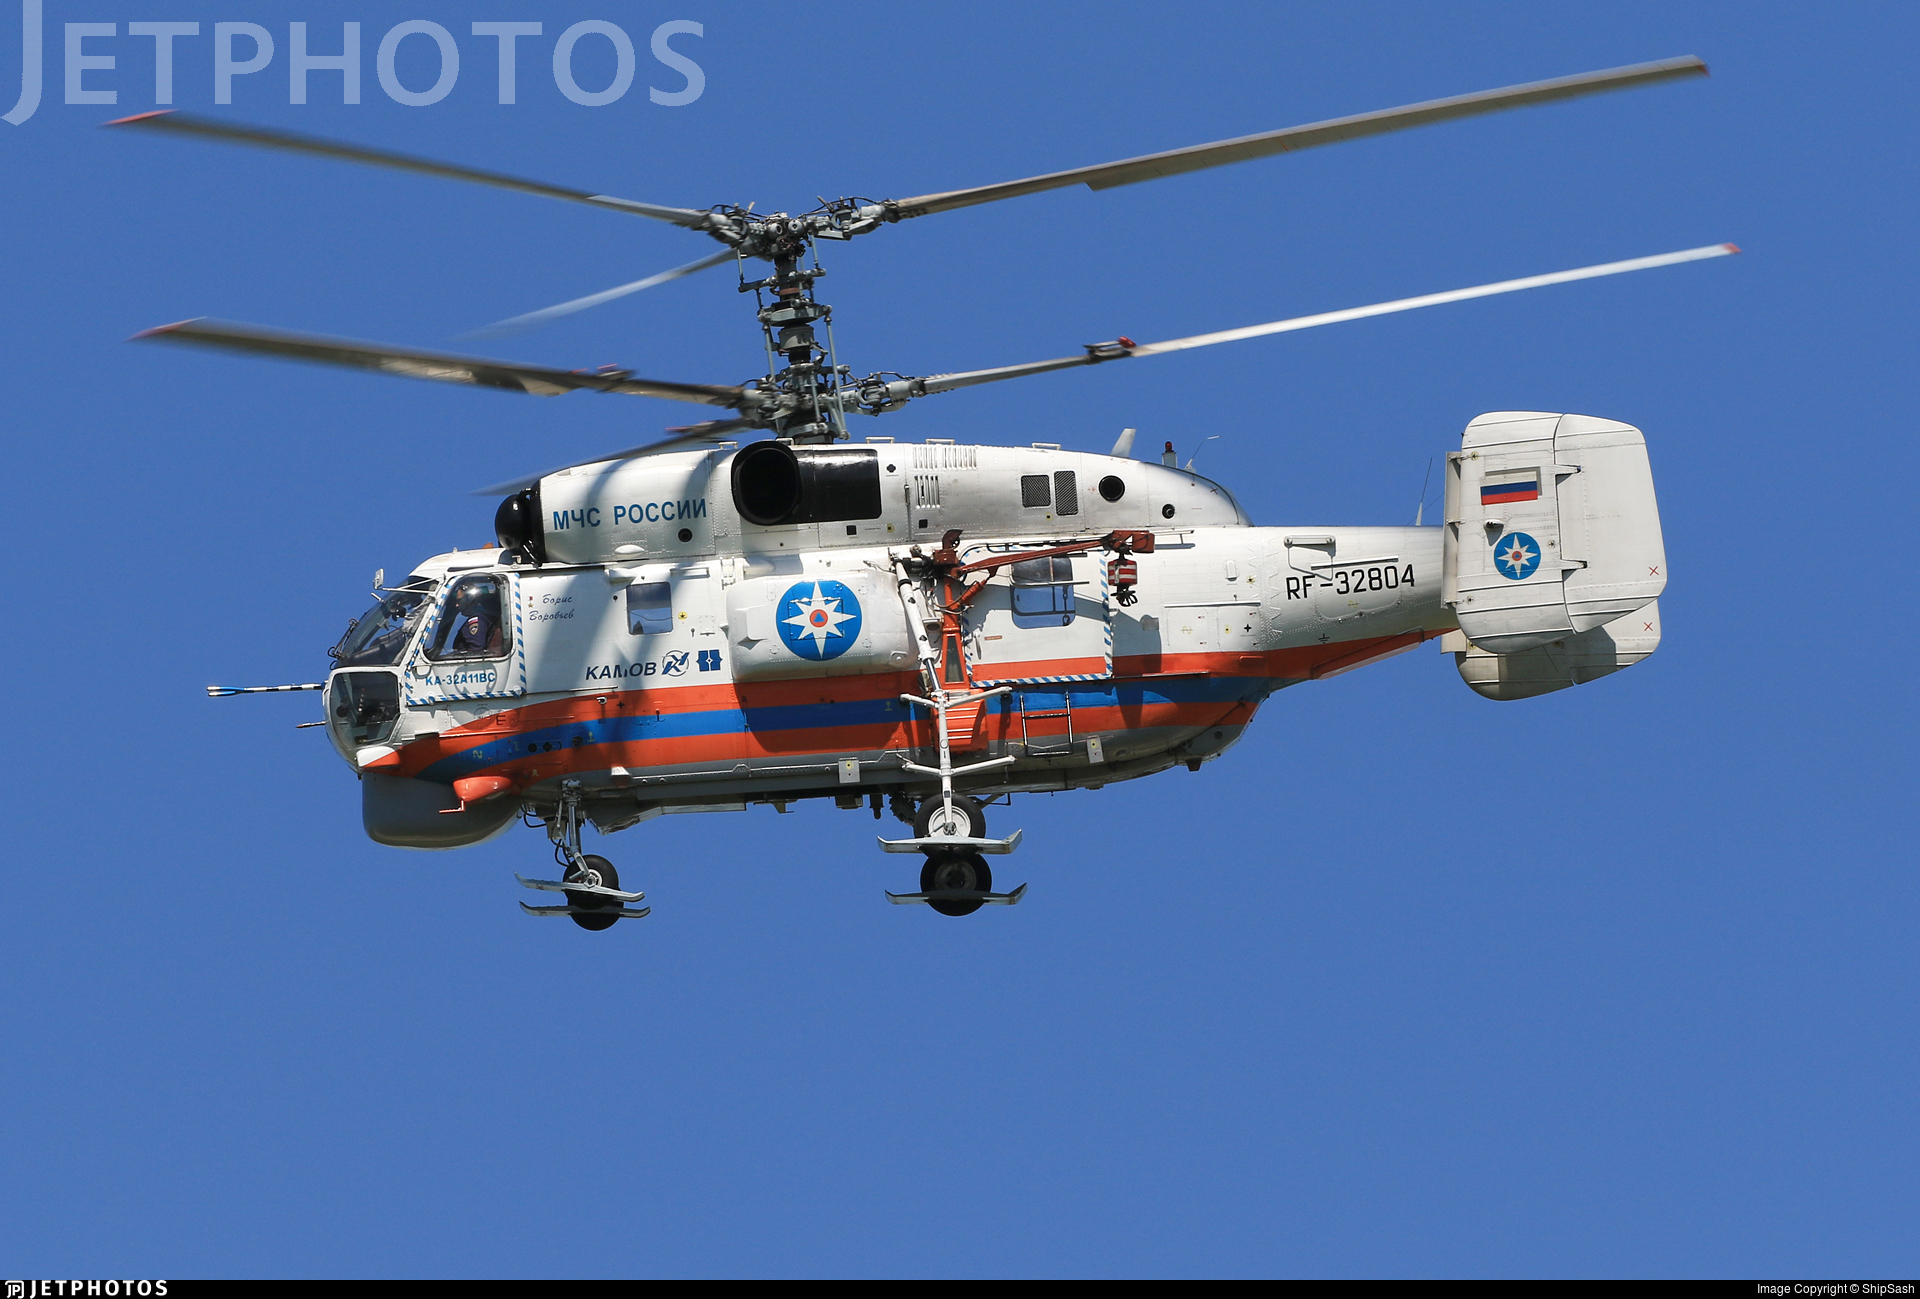 RF-32804 - Kamov Ka-32A-11BC - Russia - Ministry for Emergency Situations (MChS)